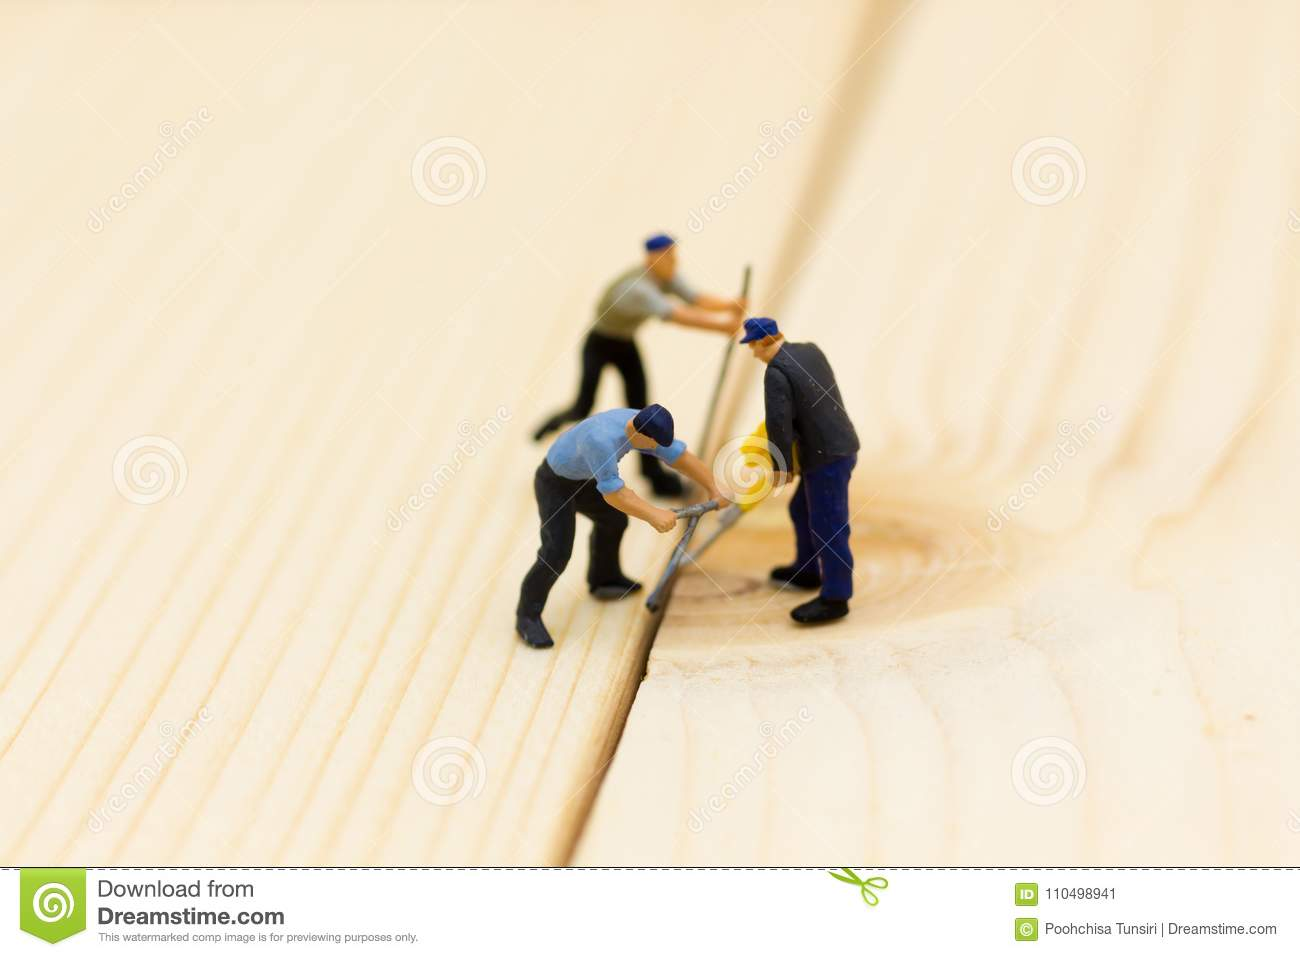 Miniature people: Workers are using wood punching equipment. Image use for construction work, business concept